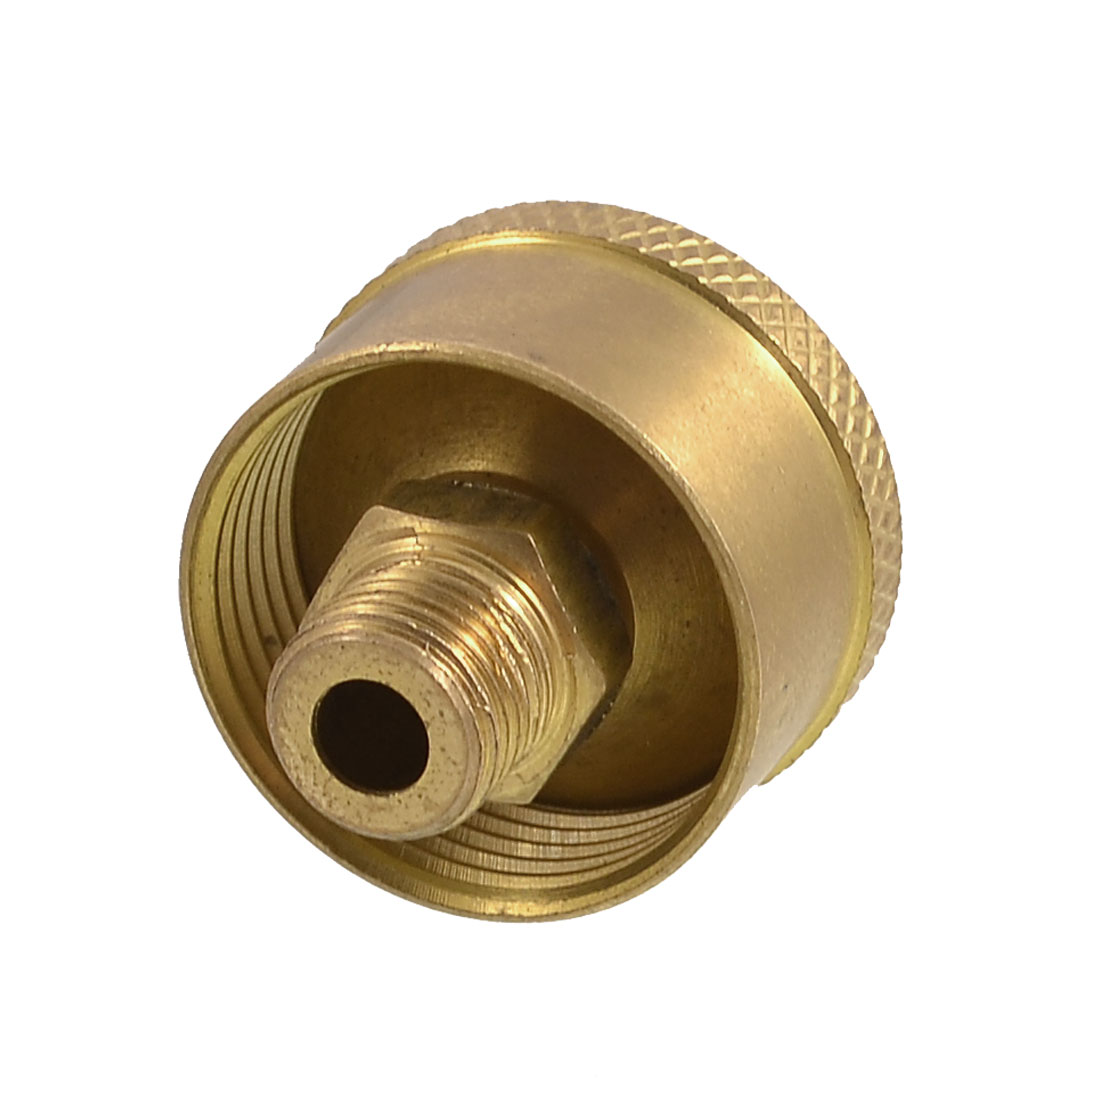 "Machine Parts 1/8"" NPT Thread Grease Oil Cup Cap Gold Tone"